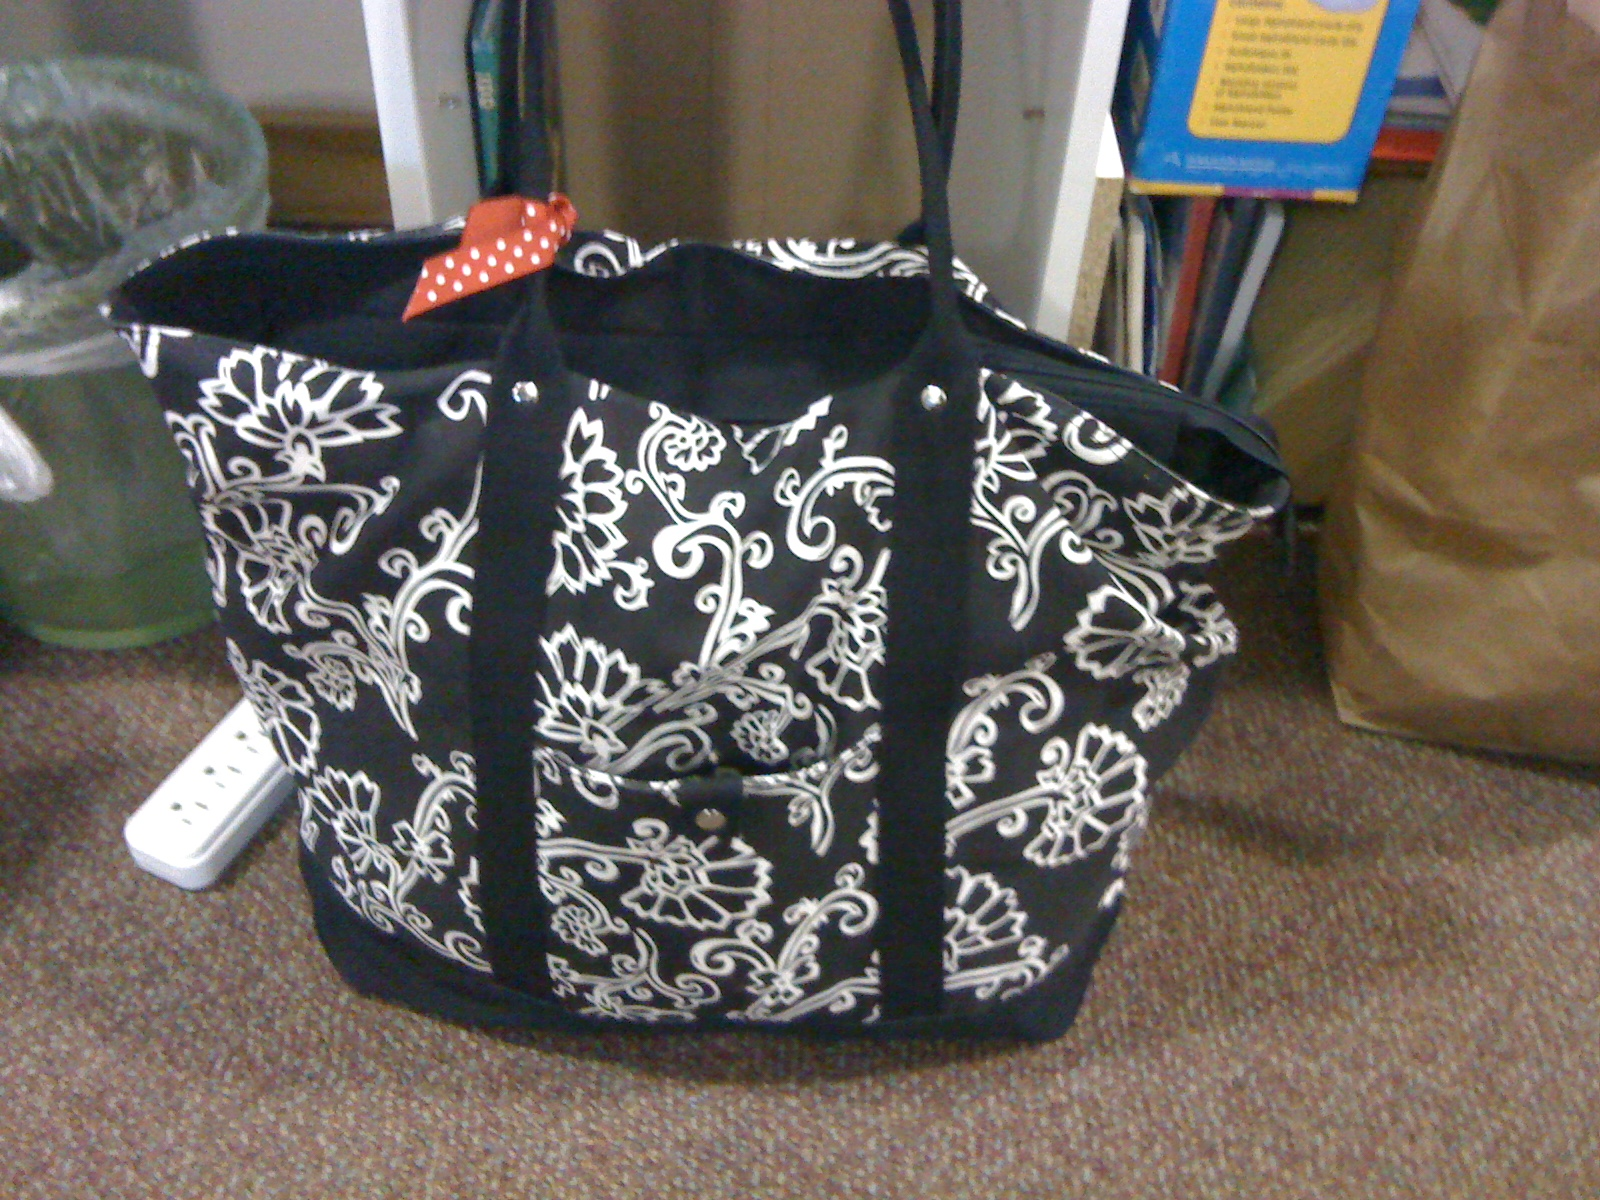 Ms.M's Blog: Organization Project Wk 7: The Teacher Bag